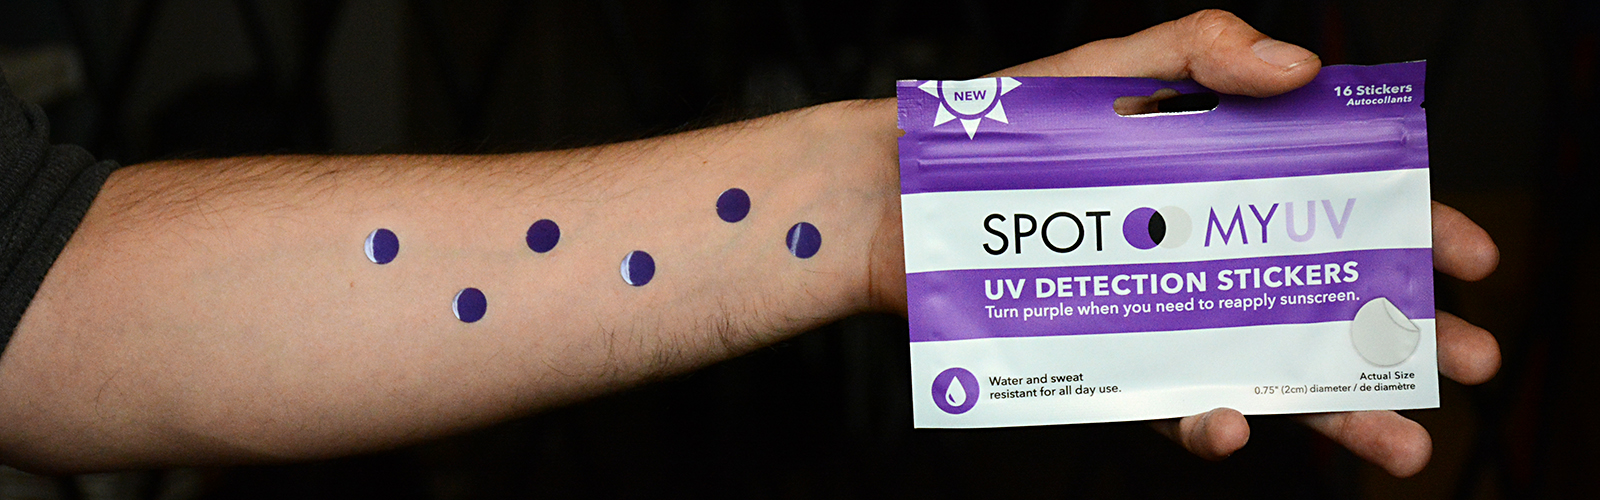 Suncayr's adhesive spot changes from purple to clear to indicate when skin is adequately protected by sunscreen. <span class=&apos;image-credits&apos;>Dan Cappellazzo</span>